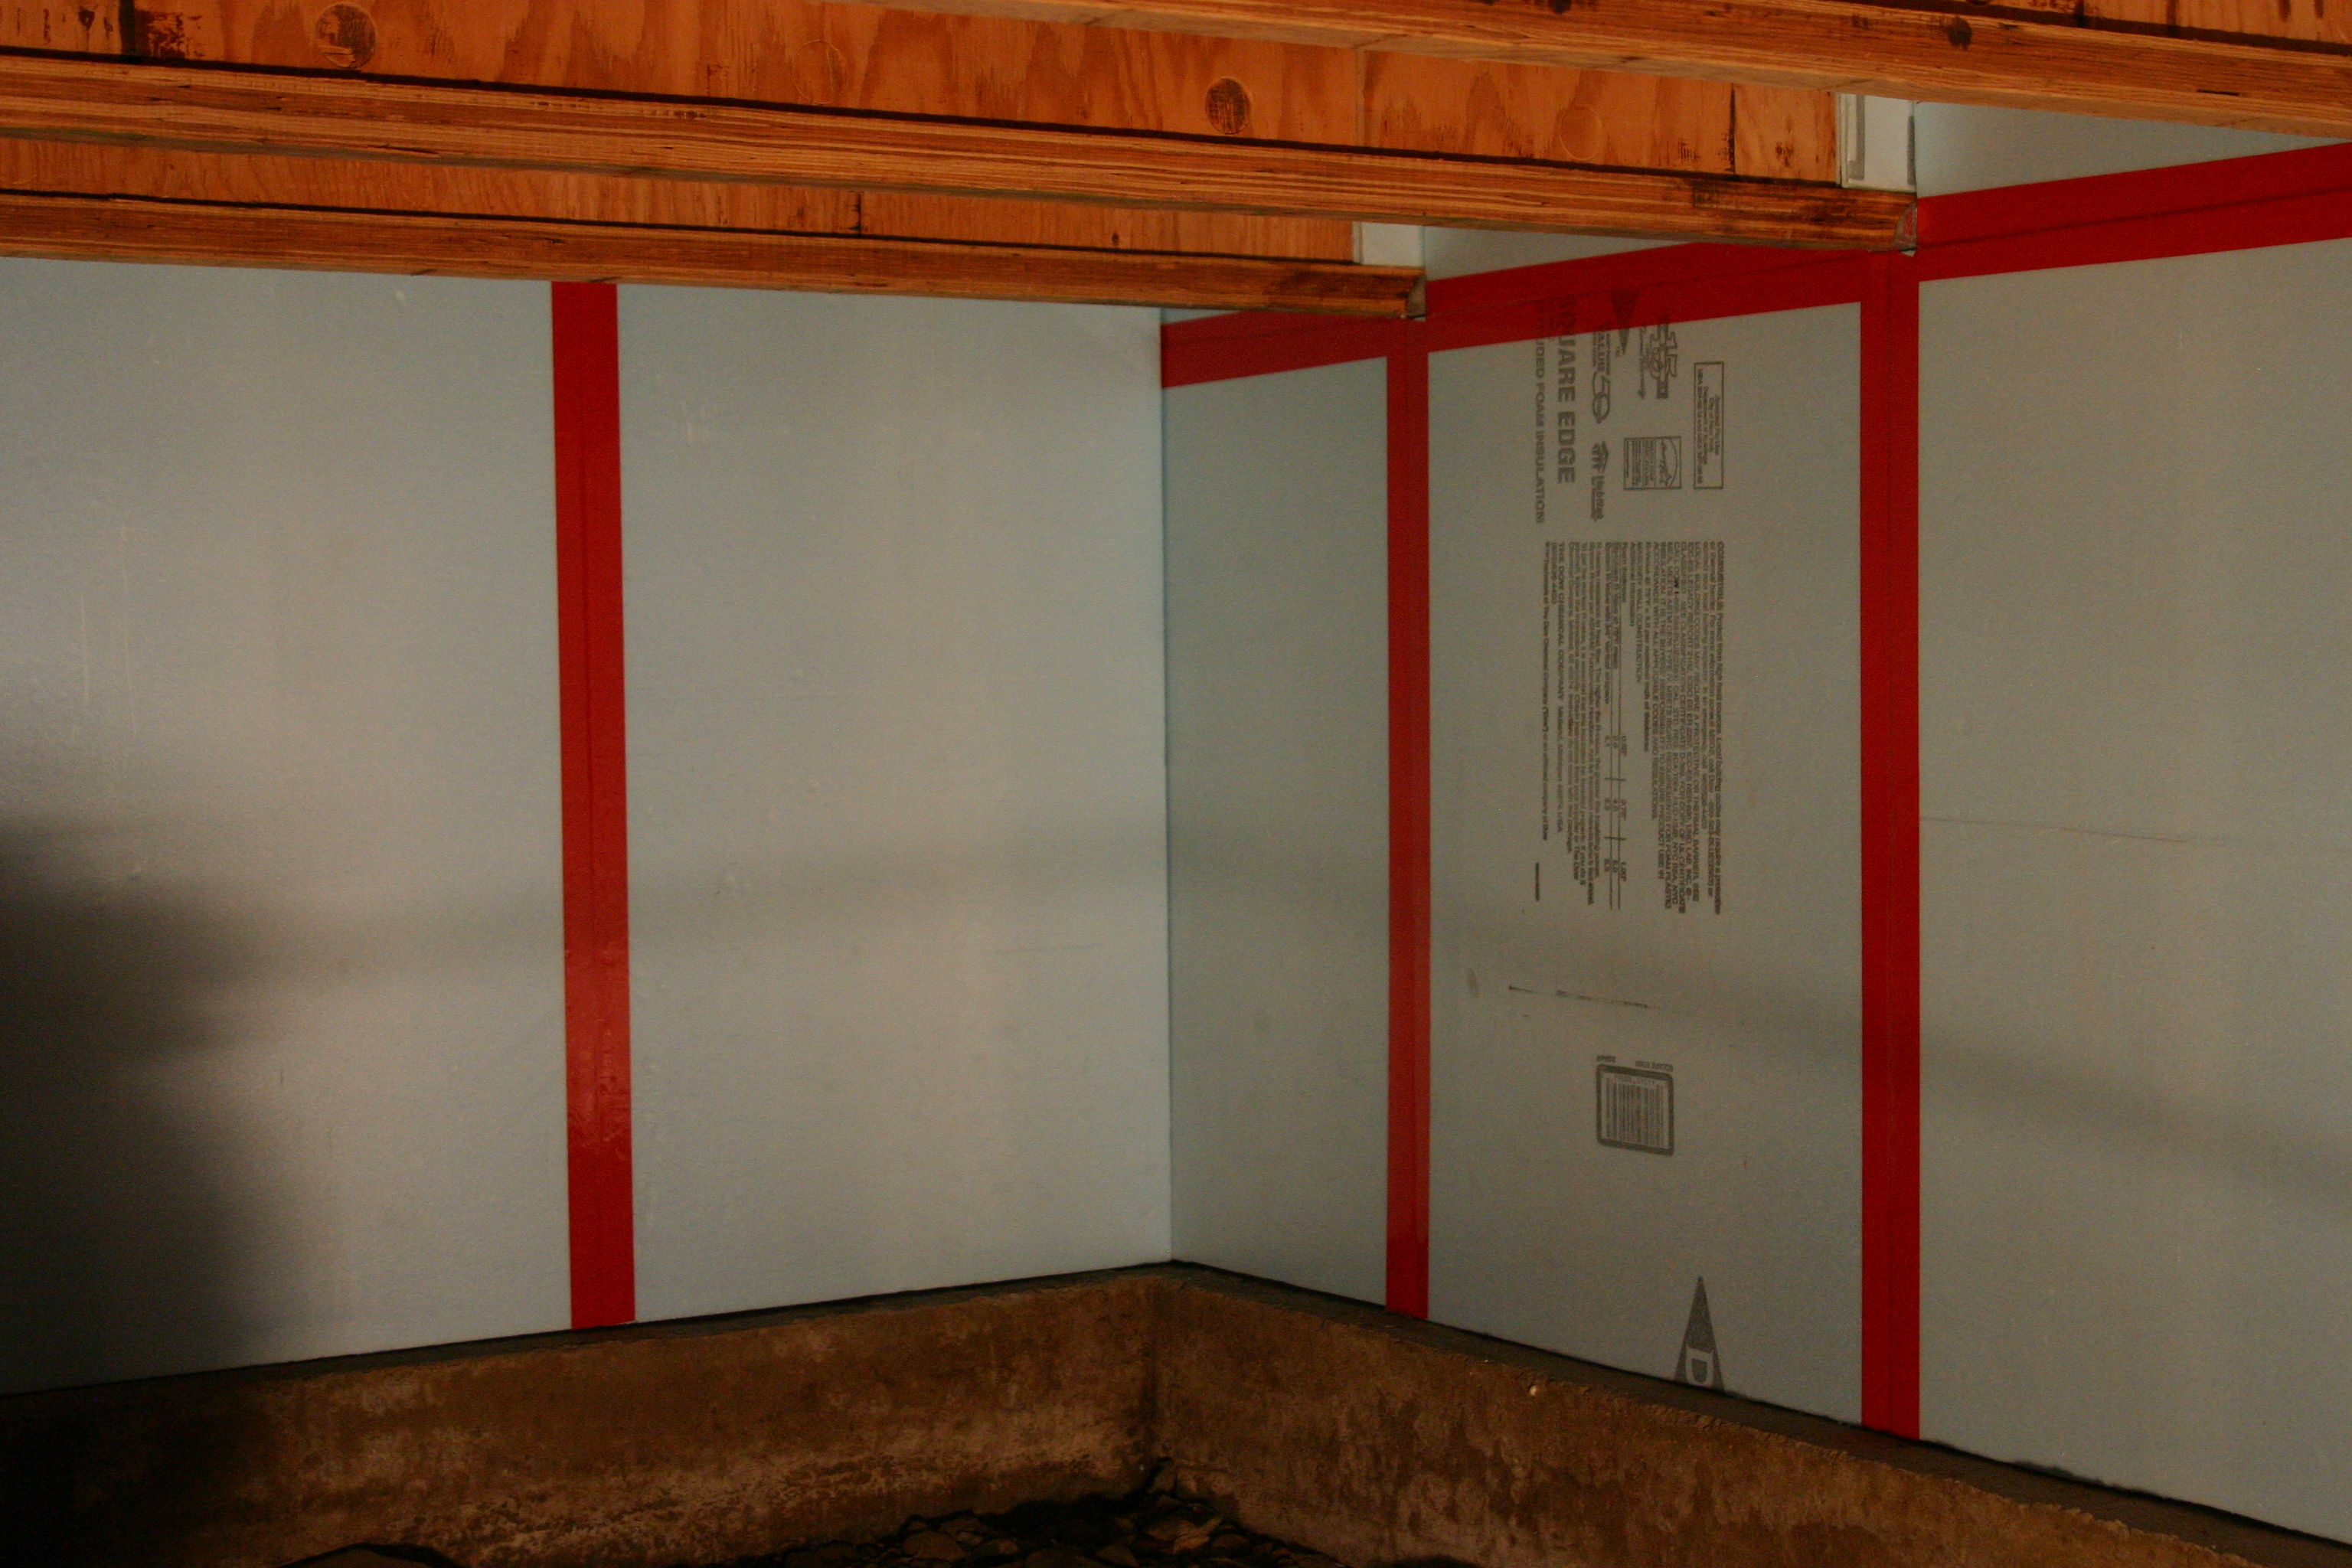 Source makinghouseswork.cchrc.org & How to Insulate your Basement